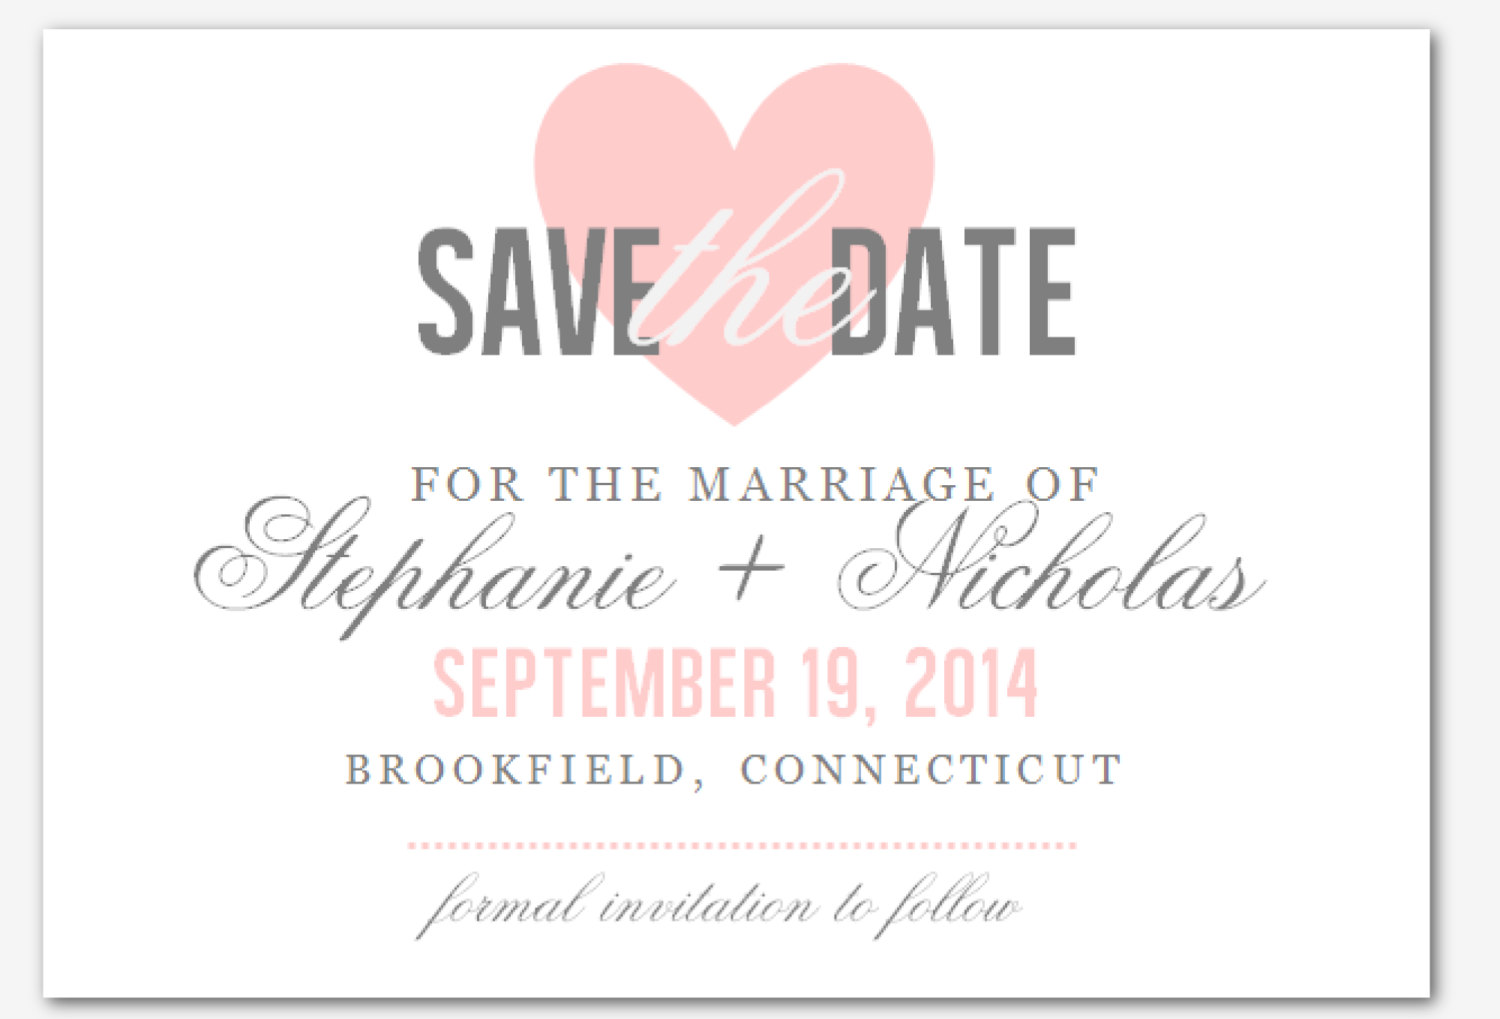 microsoft word save the date templates muco tadkanews co